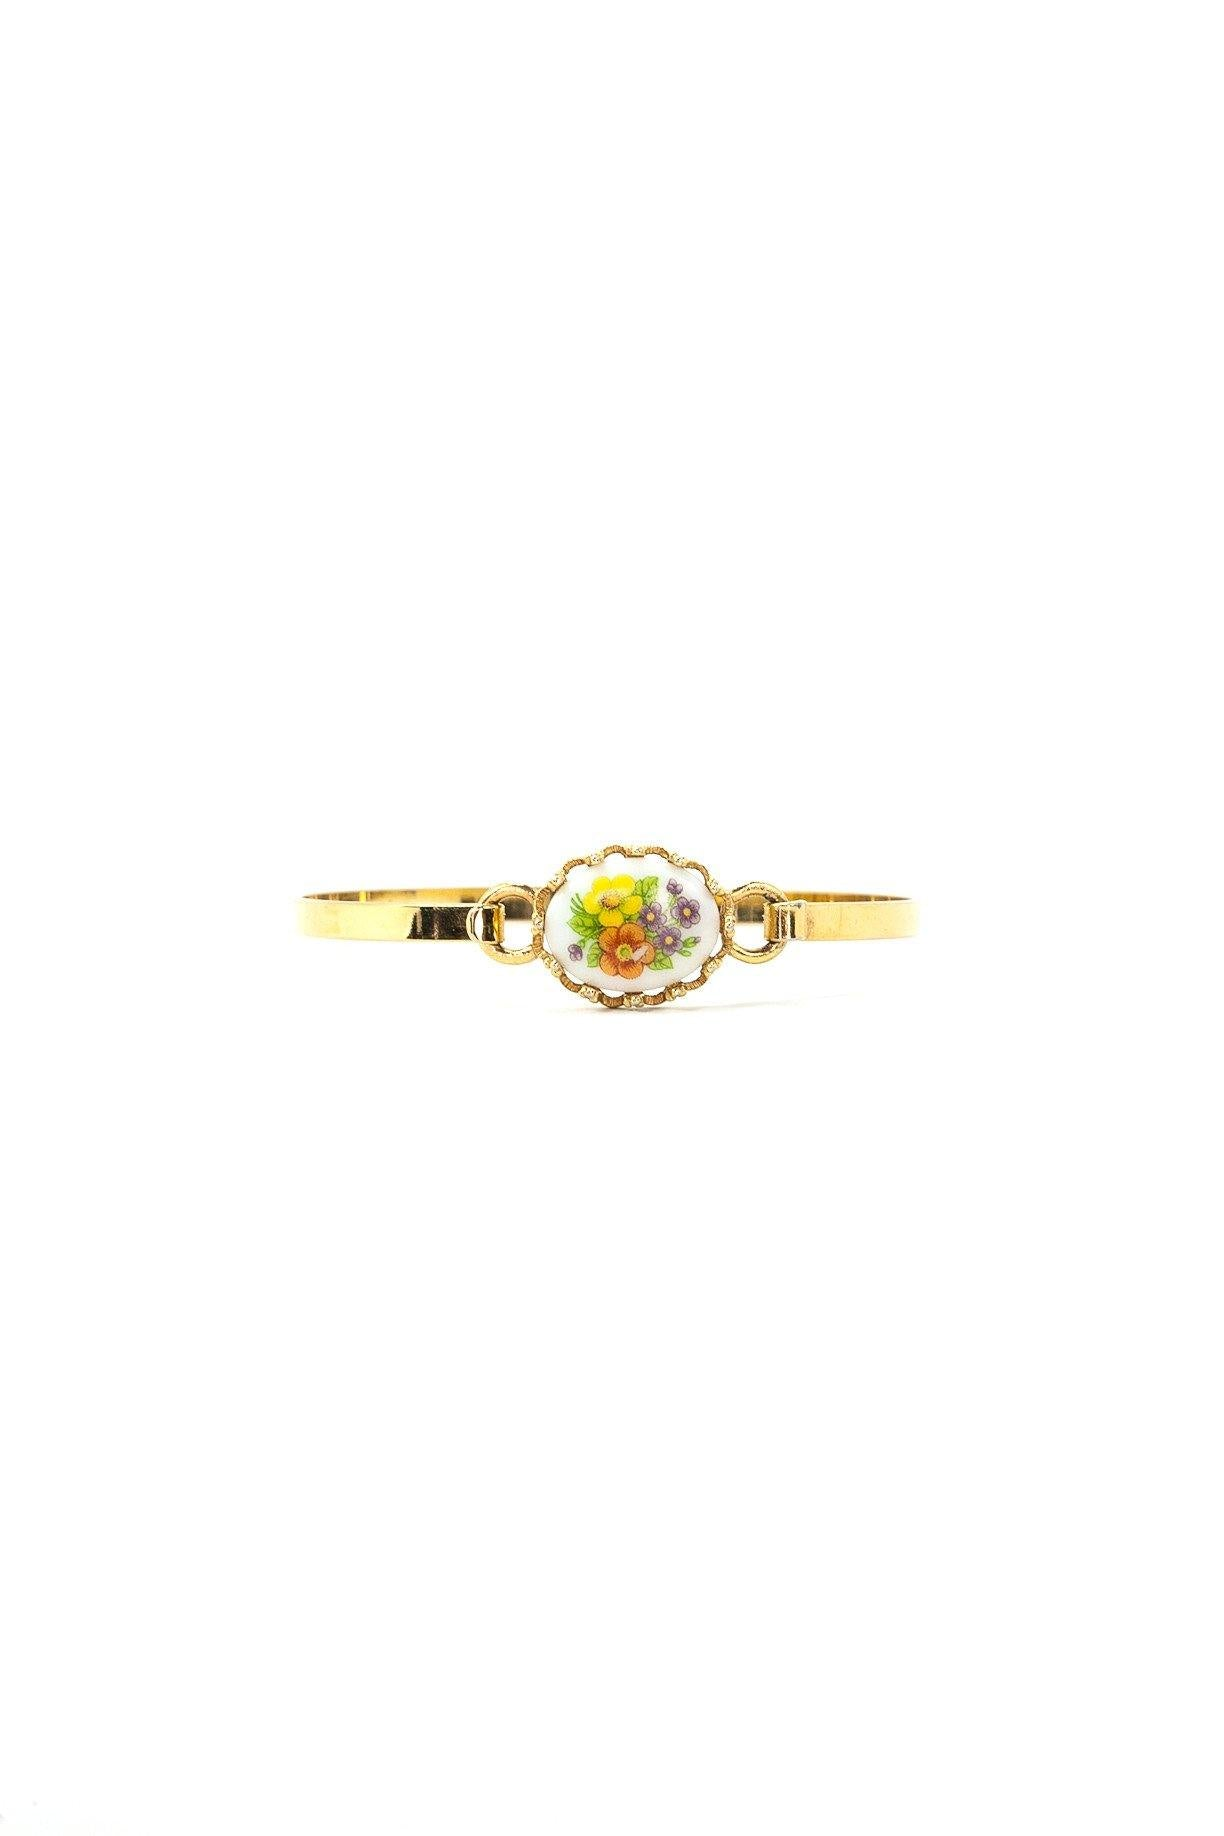 70's__Avon__Dainty Floral Bangle